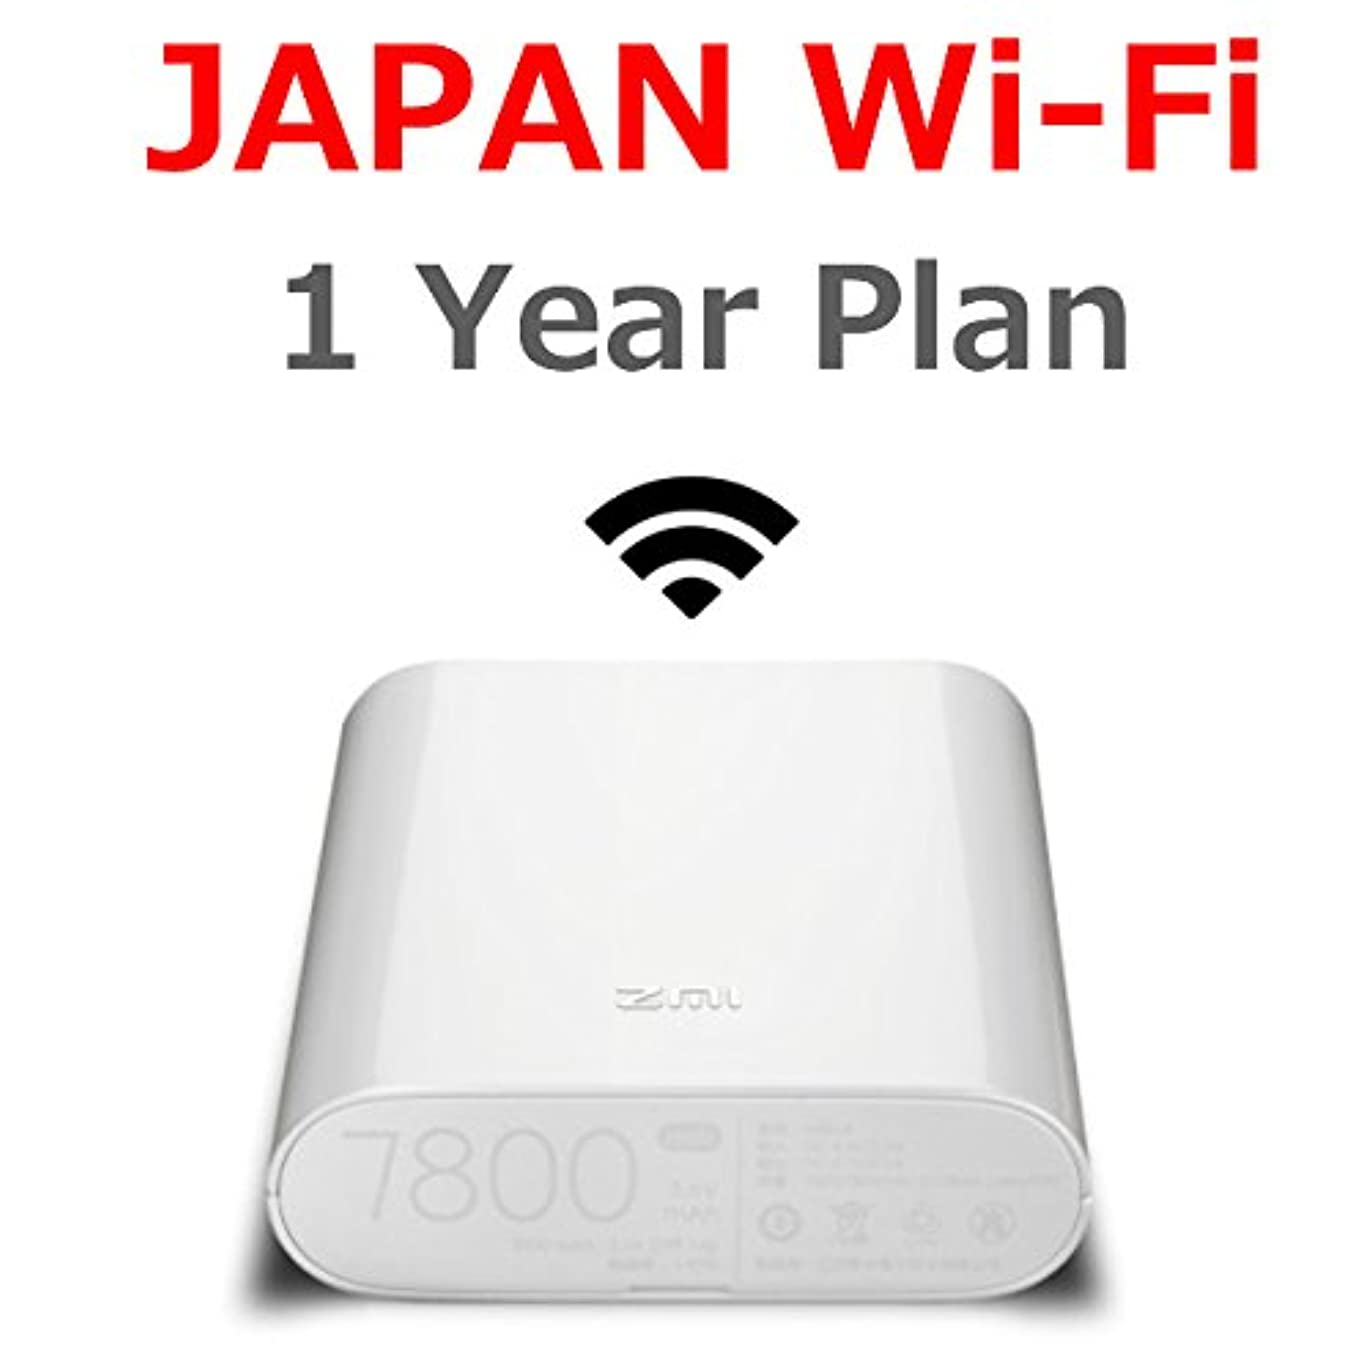 Travelers Wi-Fi/JAPAN Wi-Fi/LTE Unlimited/Wi-Fi Router with Pre-installed SIM card / MF855 7800mAh (1 Year Plan)